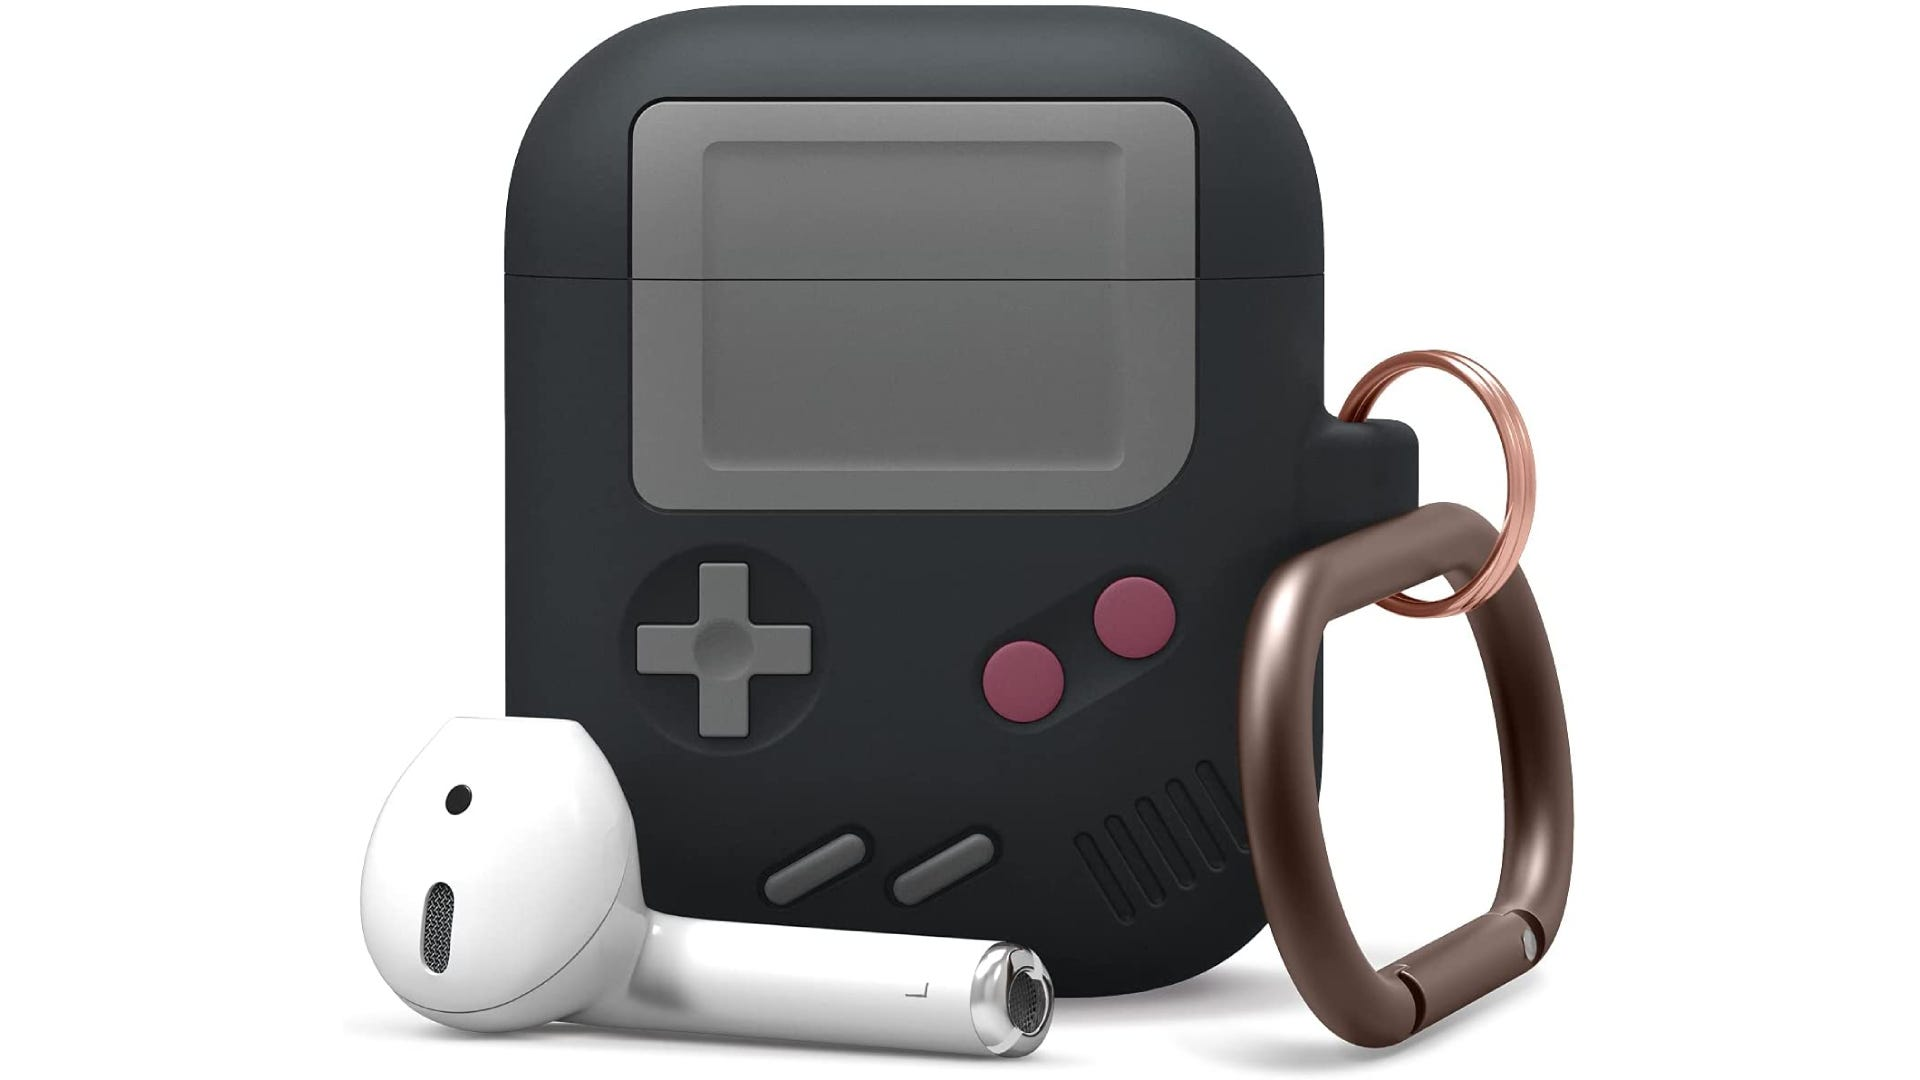 an AirPods case designed to look like a Nintendo Gameboy with a carabiner on the side and one AirPod resting outside the case